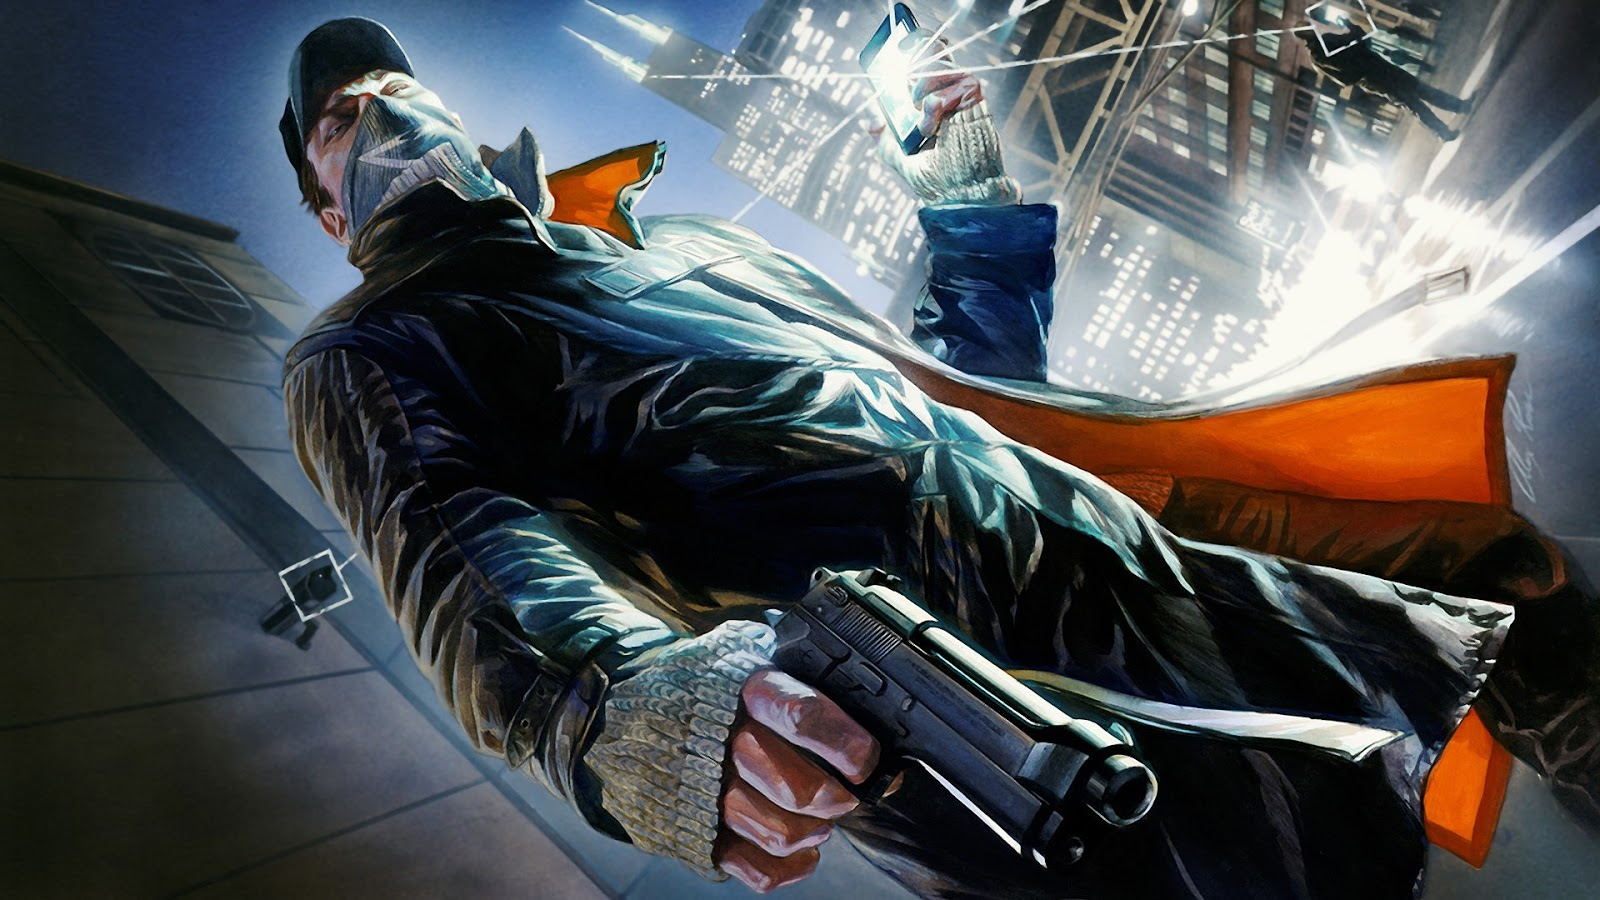 wallpapers of watch dogs